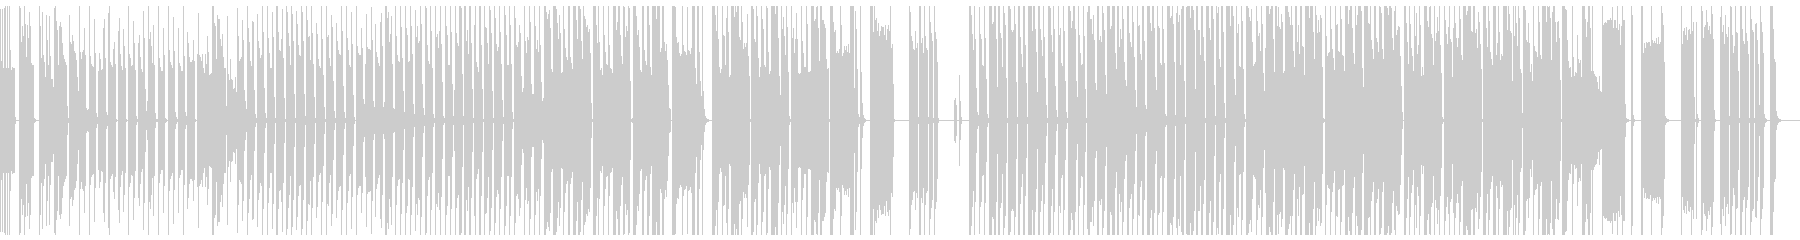 Rogue theme you can't give up somewhere's unreproduced waveform